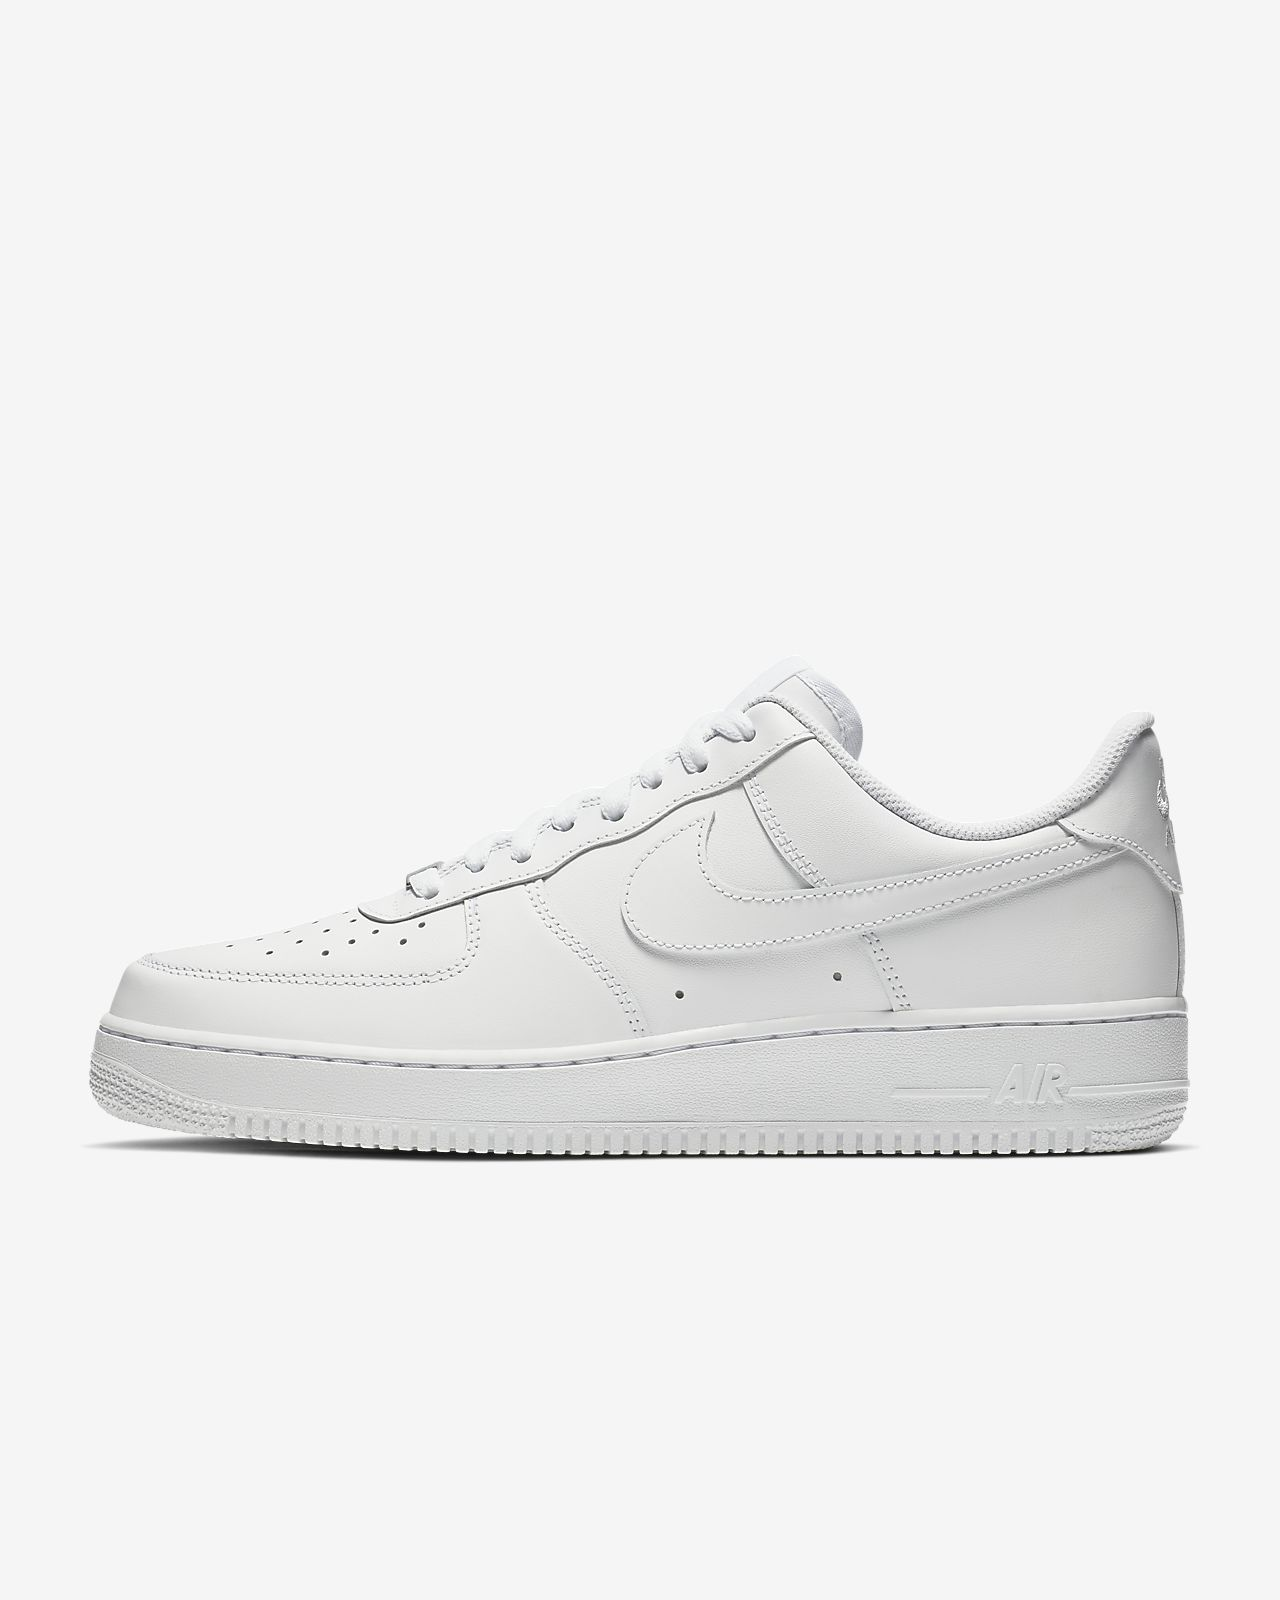 meilleure sélection f4b8b 7c7c0 Nike Air Force 1 '07 Men's Shoe